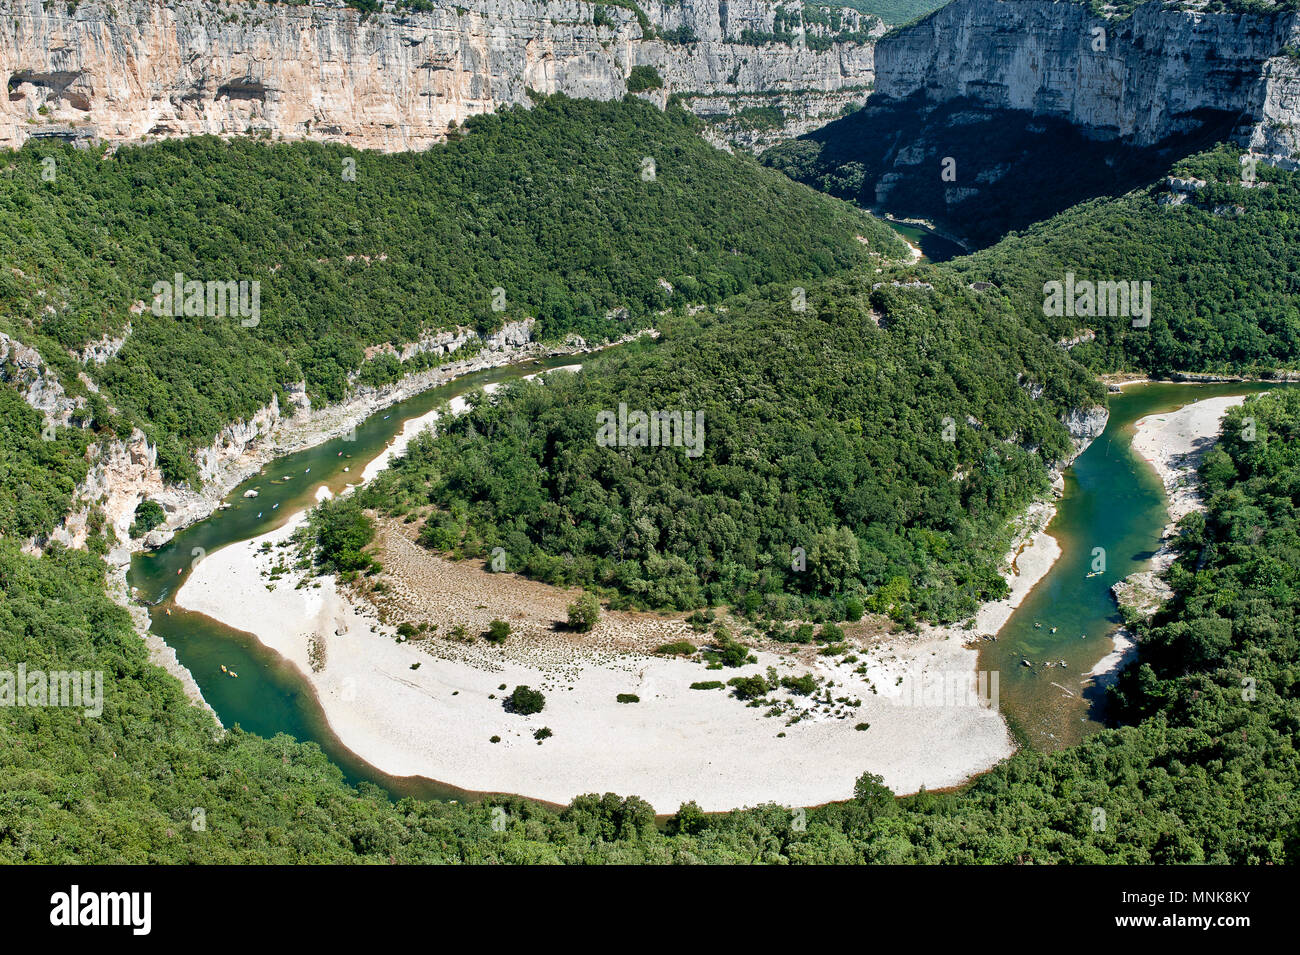 Landscape of the Ardeche Gorges (south-eastern France): meanders of the Ardeche river viewed from the Templiers panoramic viewpoint - Stock Image